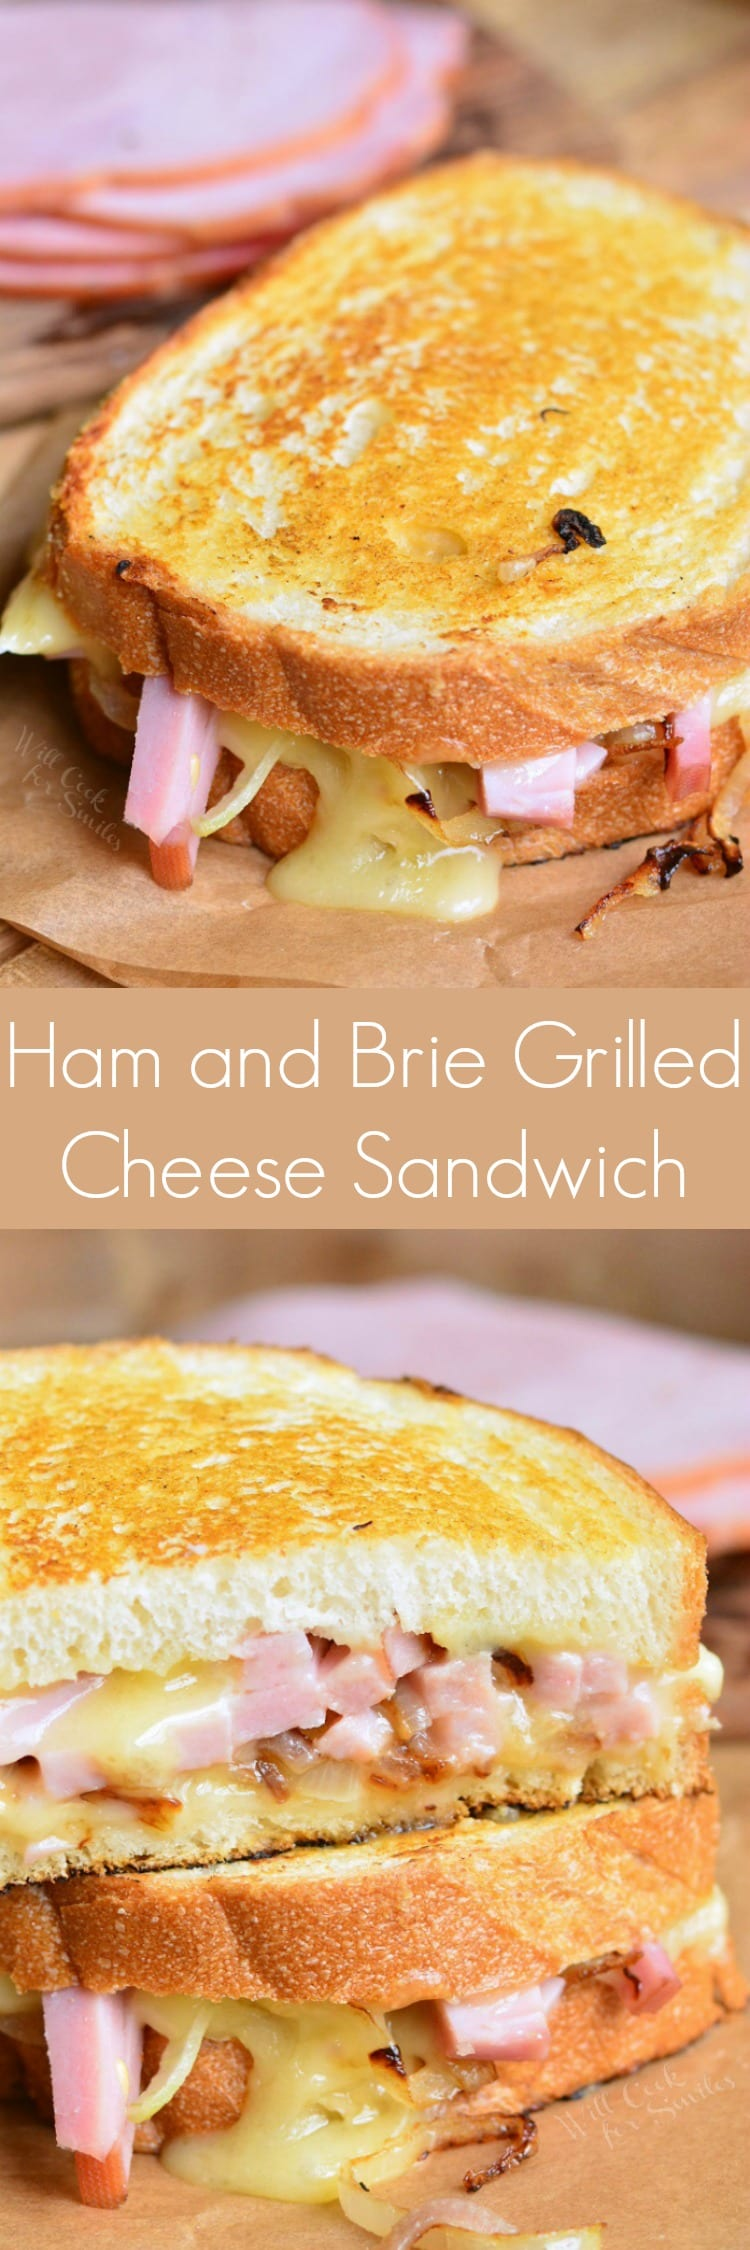 Grilled ham and brie cheese sandwich. Fantastic grilled cheese sandwich made with ham, brie cheese, sauteed onion, and a bit of maple mustard glaze. #leftoverham # grilled cheese